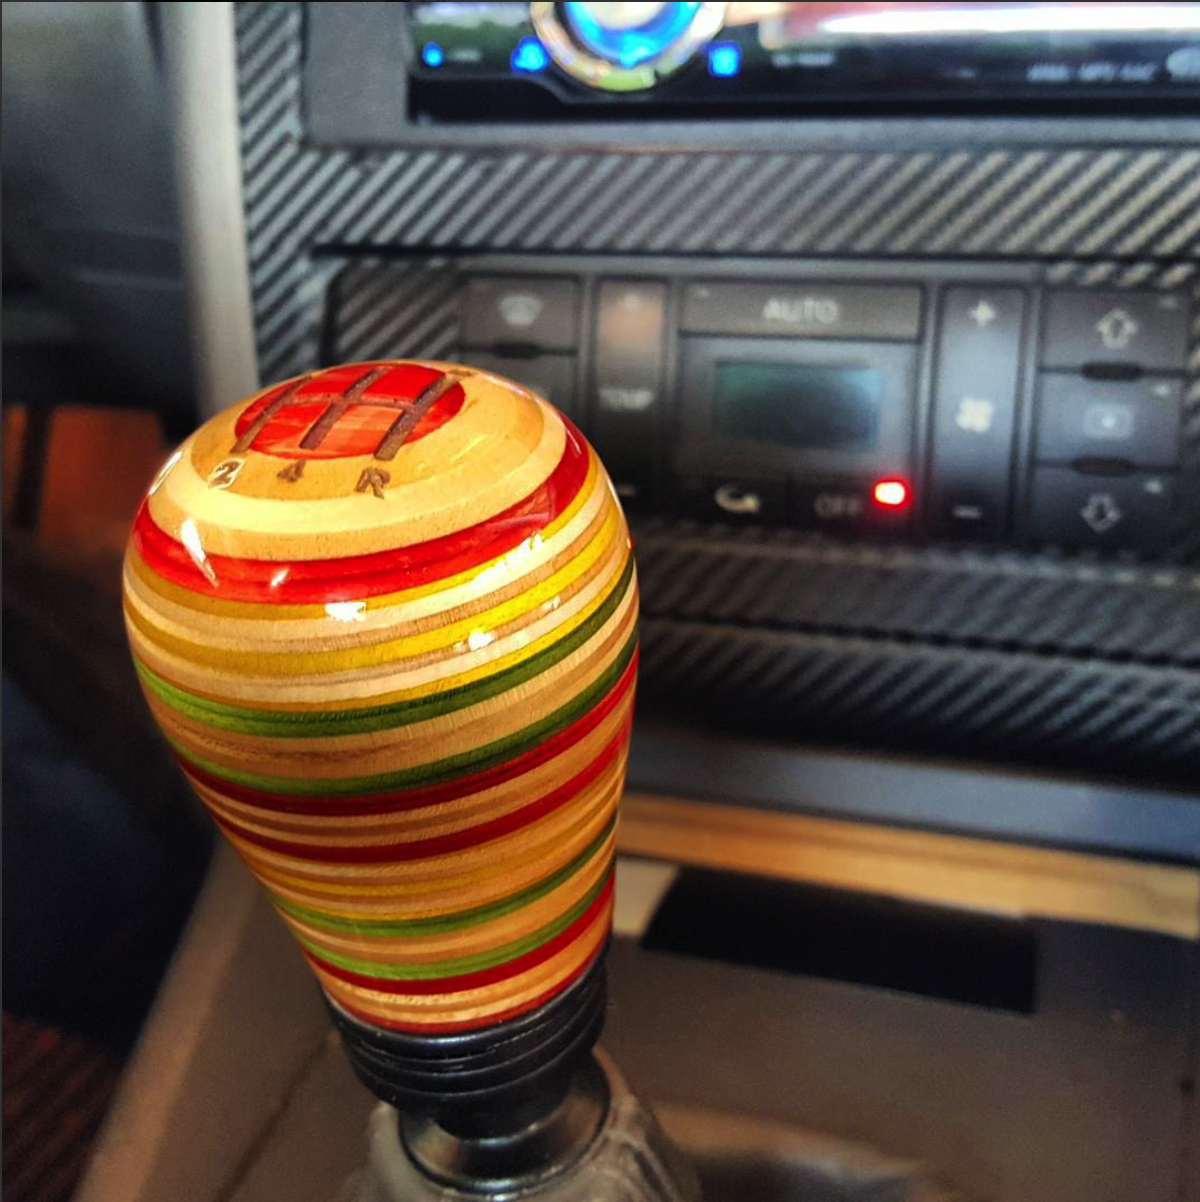 99 A4 Audi shift knob - Commune DIY | Recycled Skateboards